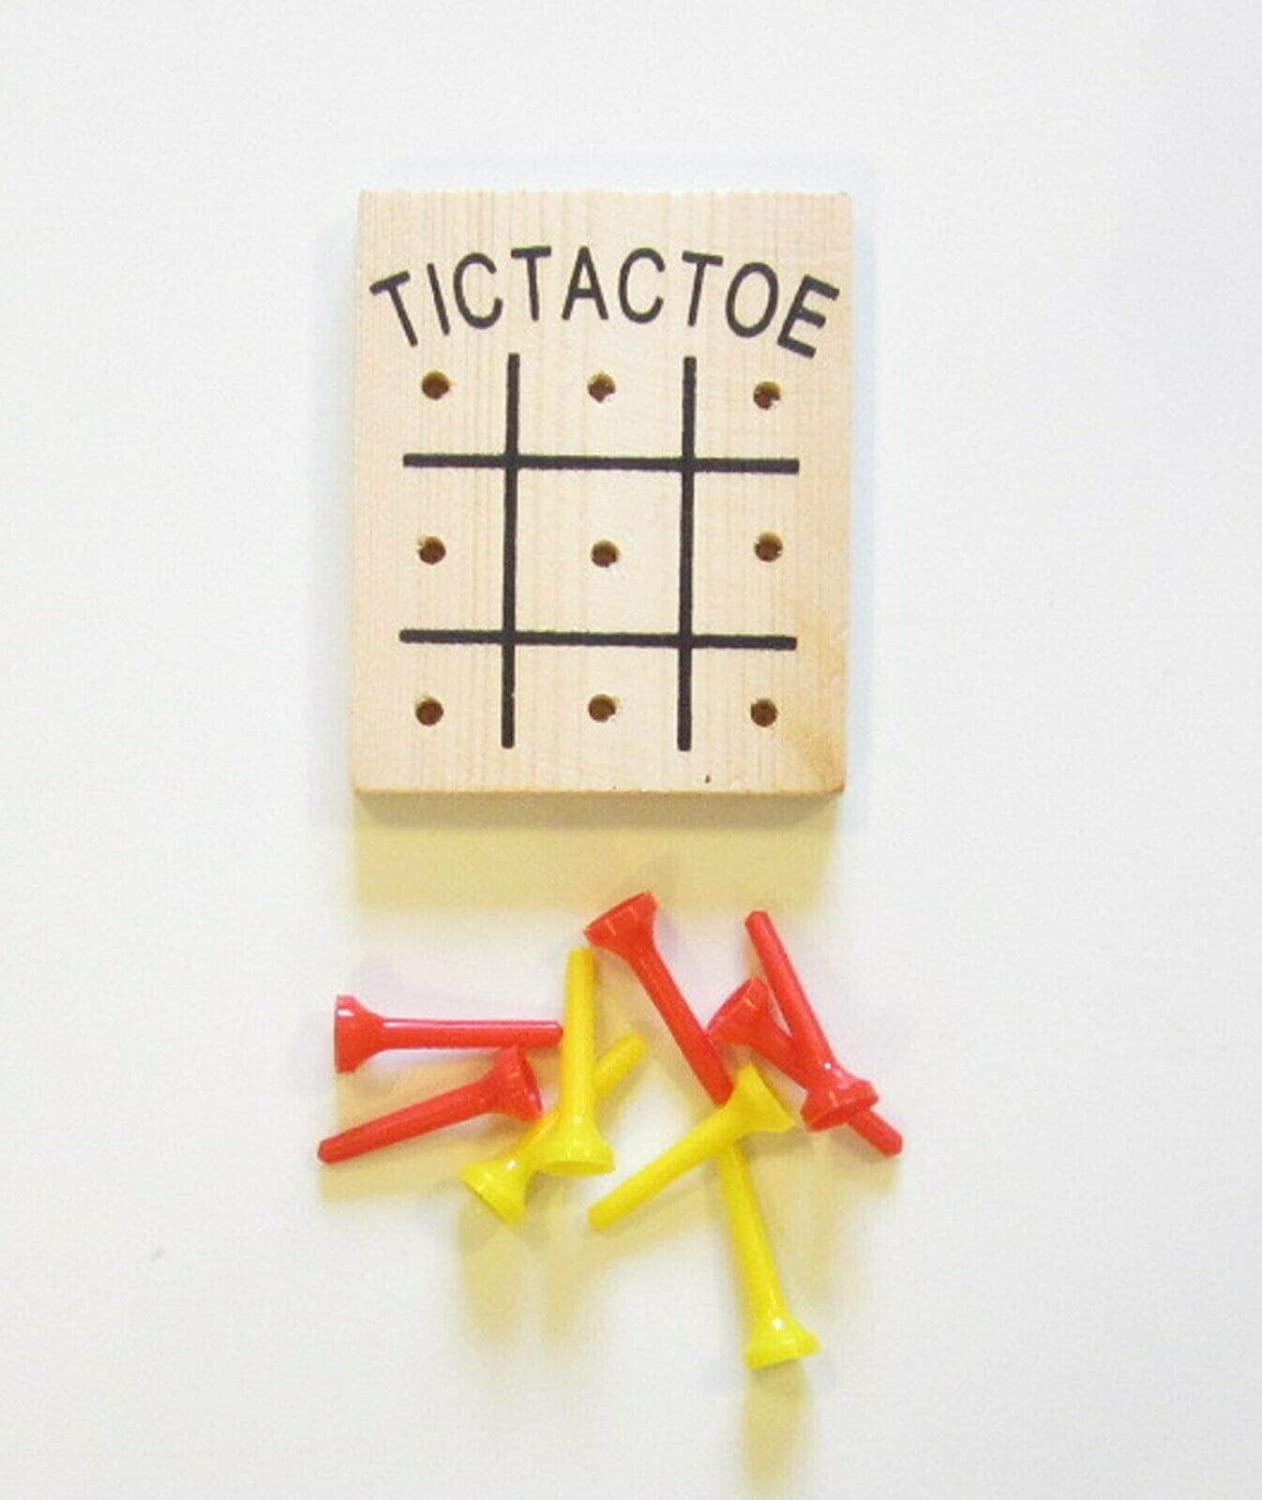 1 NEW WOODEN TIC TAC TOE GAME WOOD TRAVEL GAME KIDS CLASSIC TOY TIC-TAC-TOE ACCESSORIES INDOOR OUTDOOR